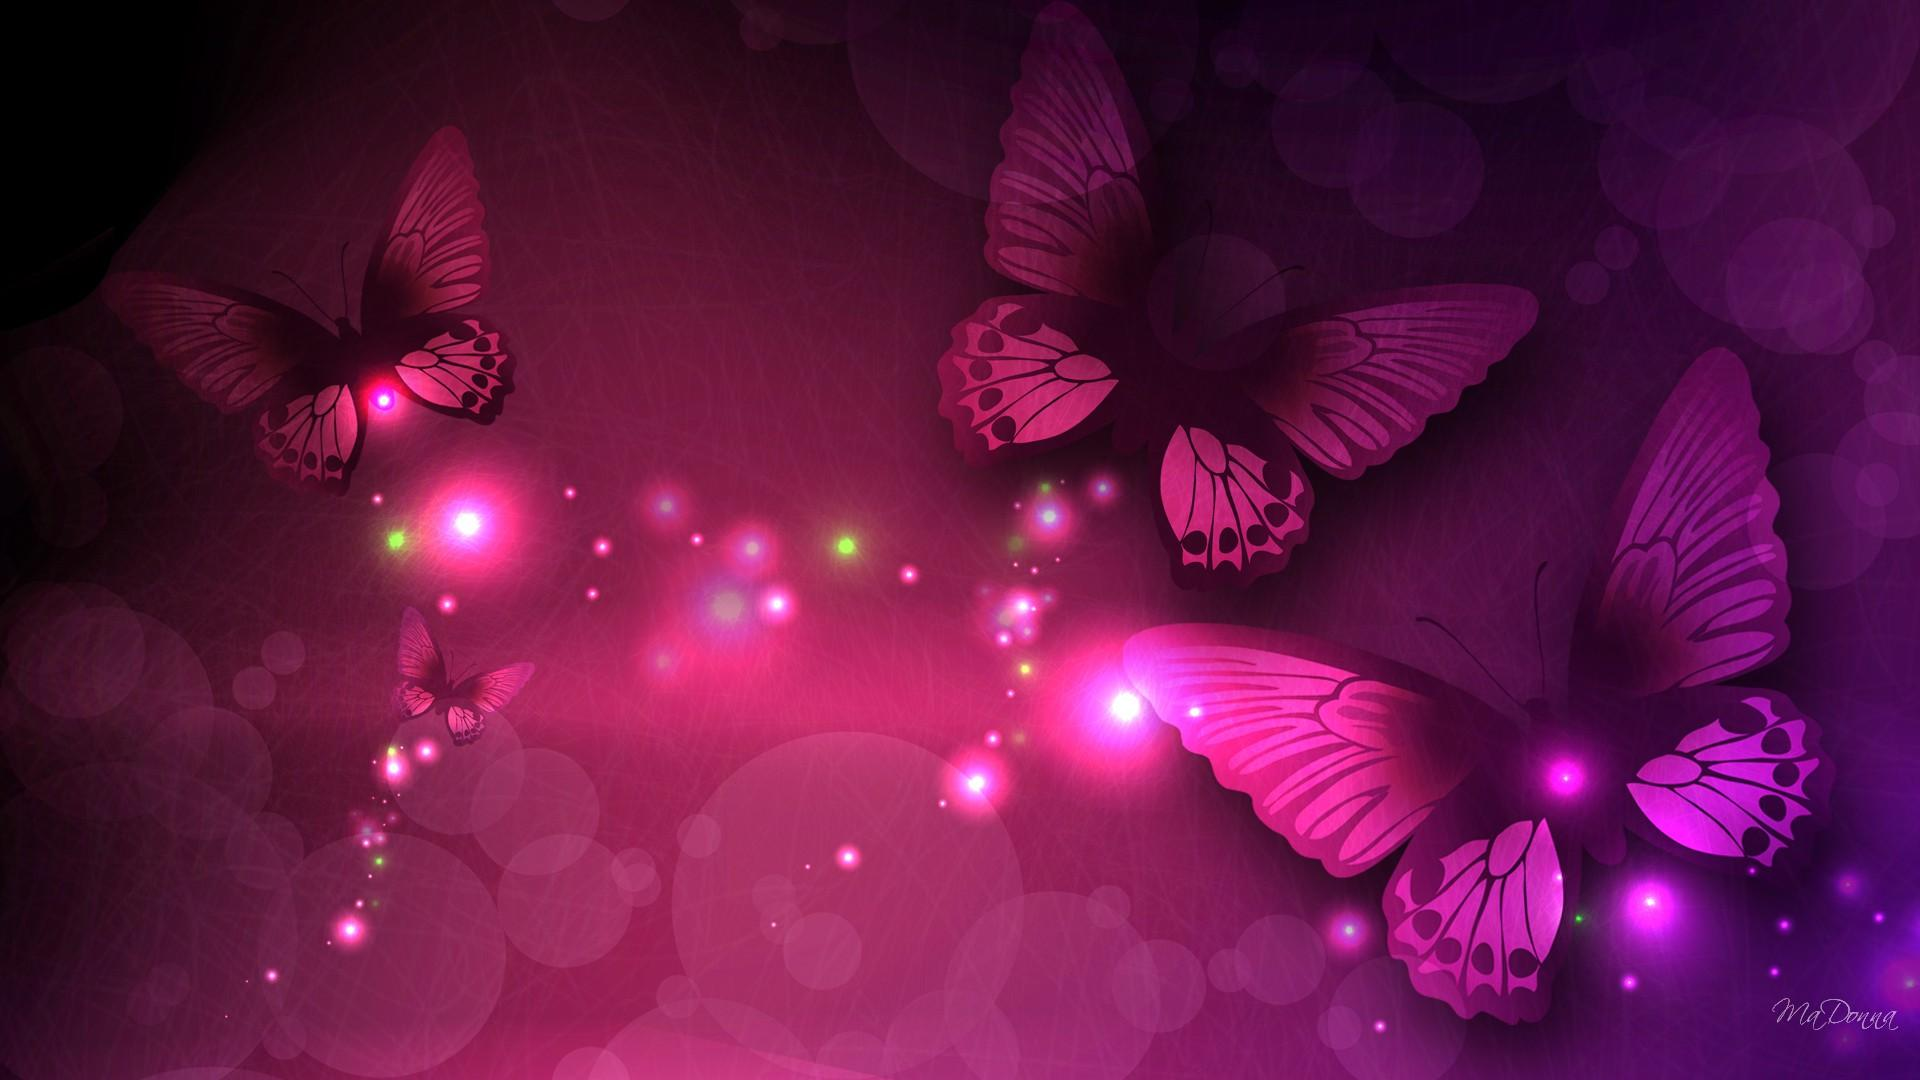 Black Butterfly Wallpaper 1854229 Hd Wallpaper Backgrounds Download